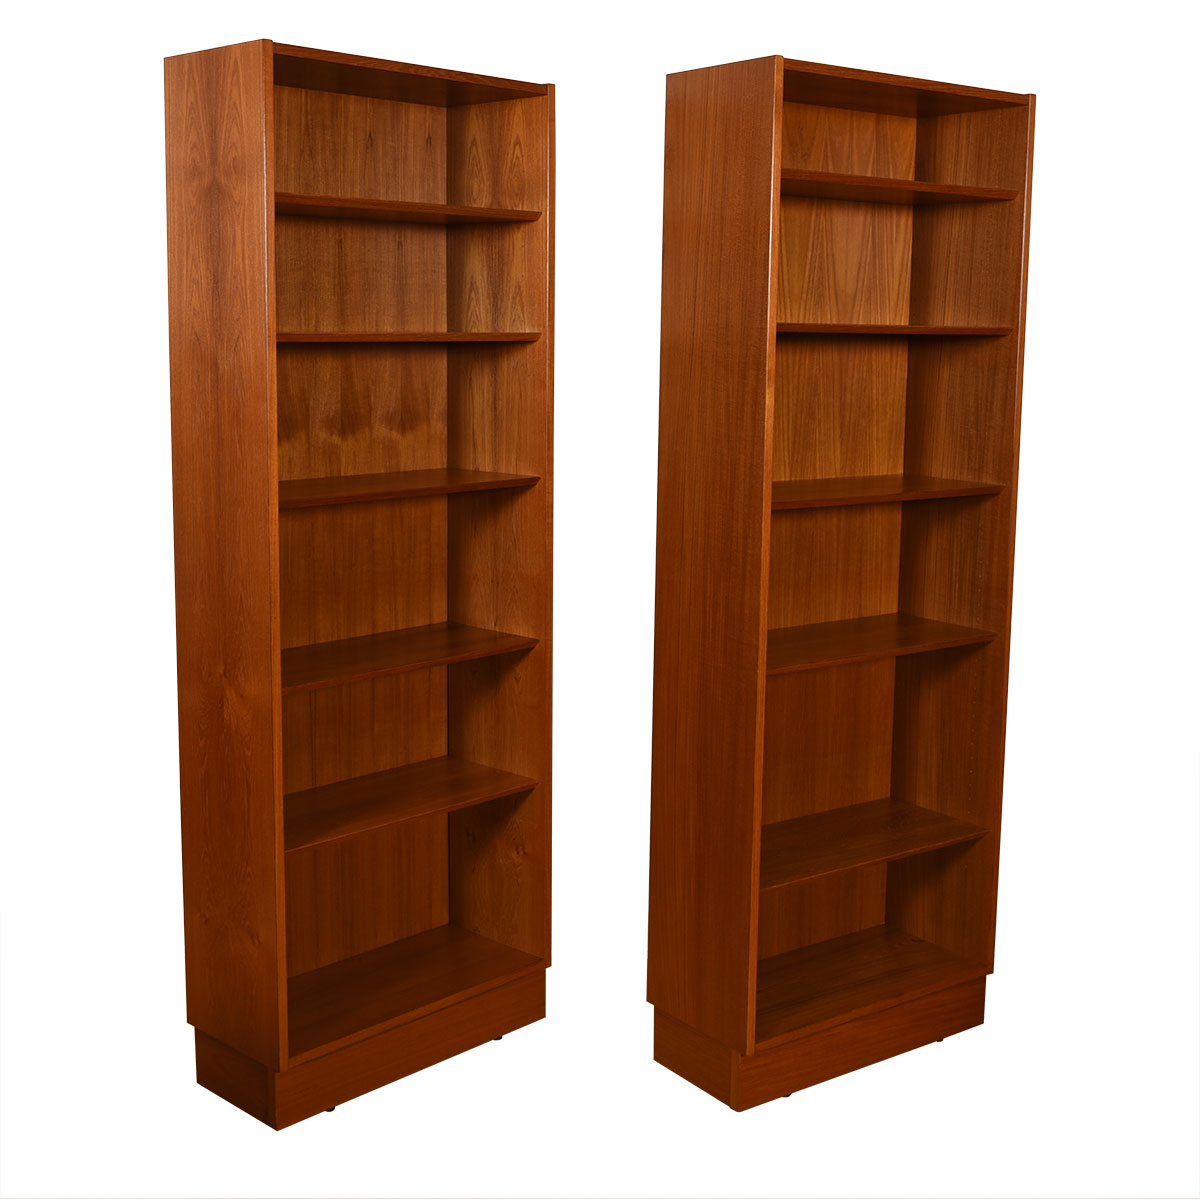 Pair of Tall Teak Adjustable Shelves Bookcases